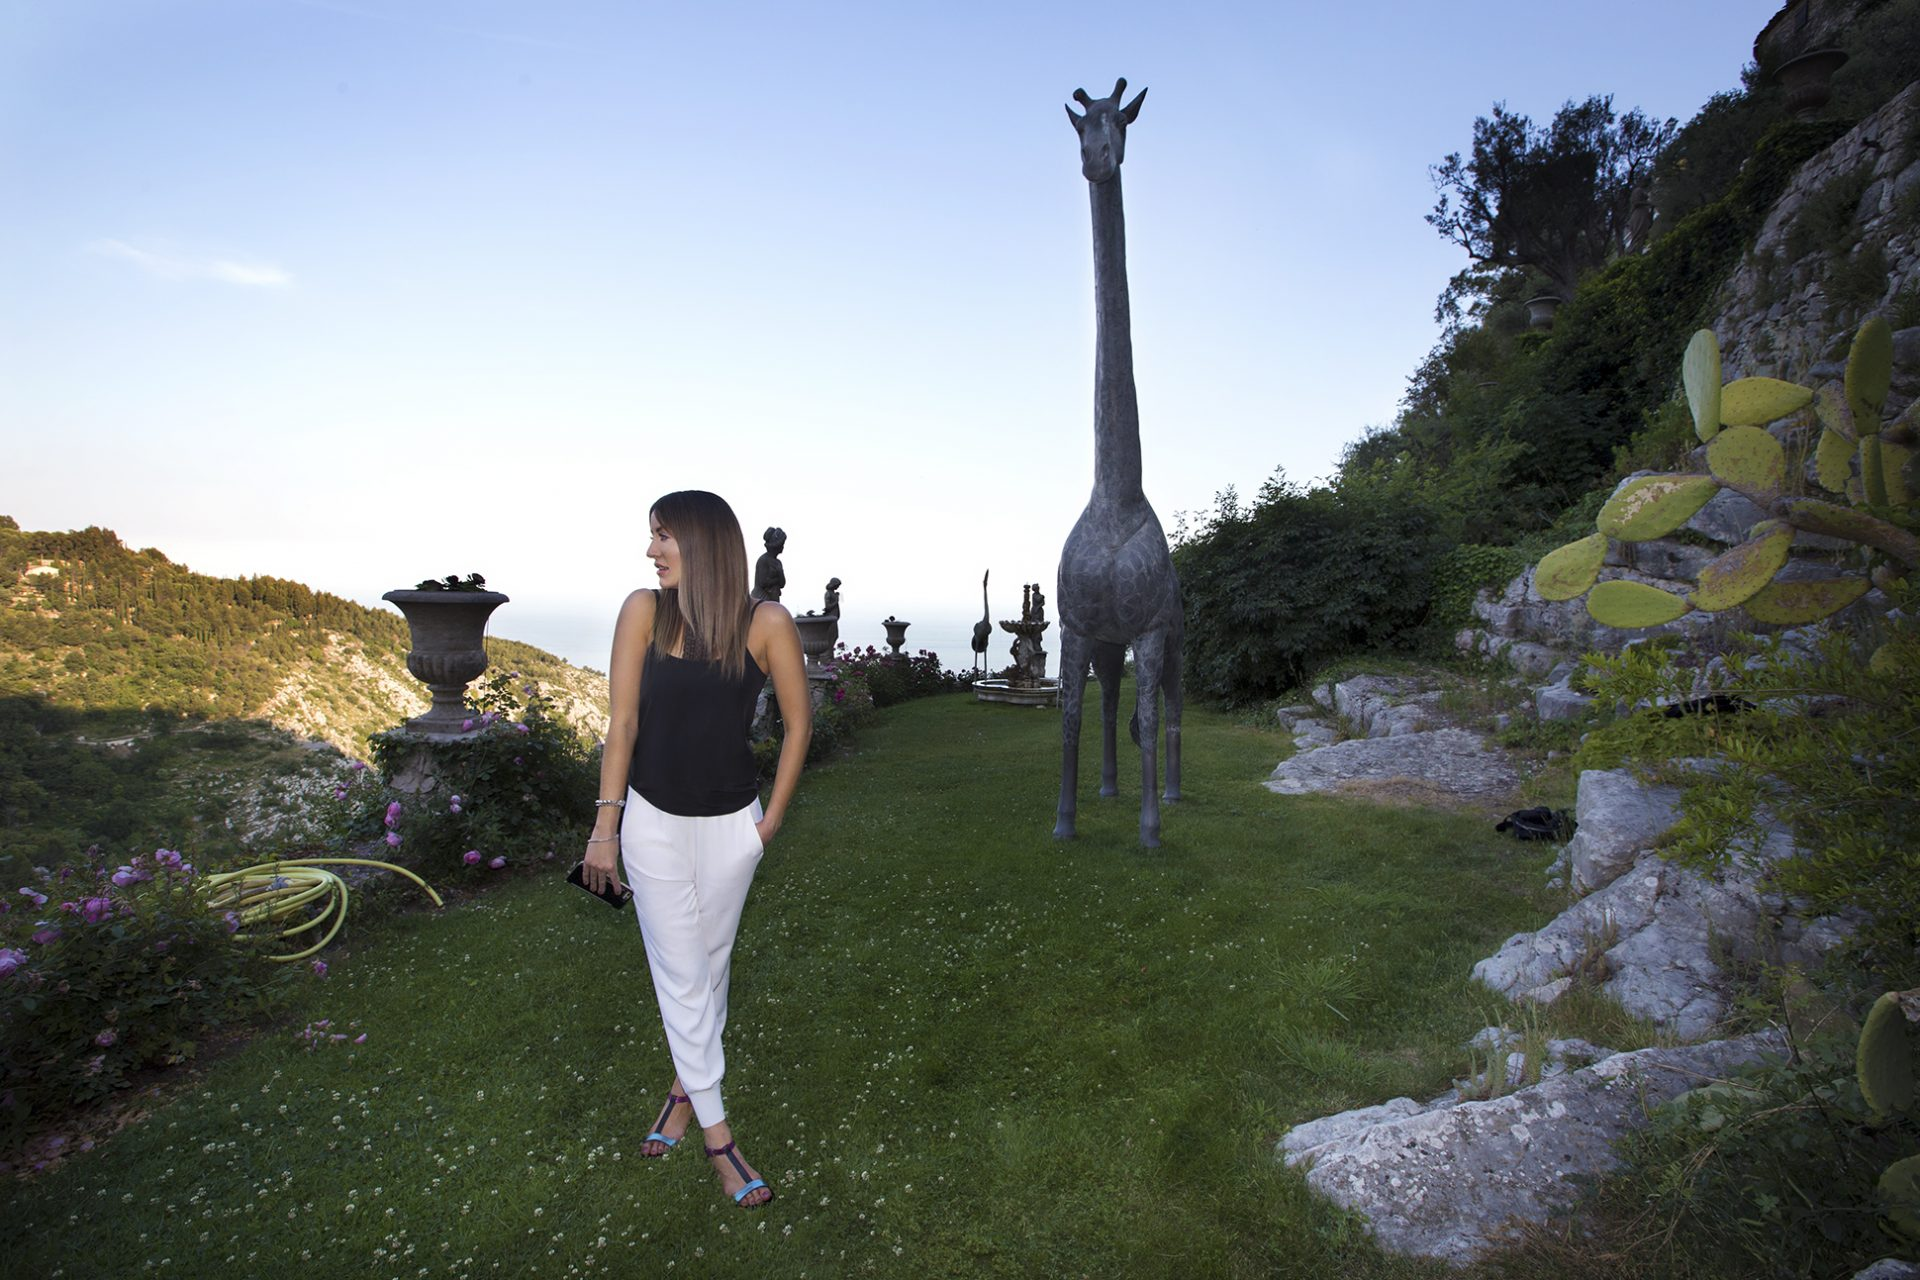 The gardens and giraffe sculptures of Chateau de la Chèvre d'or